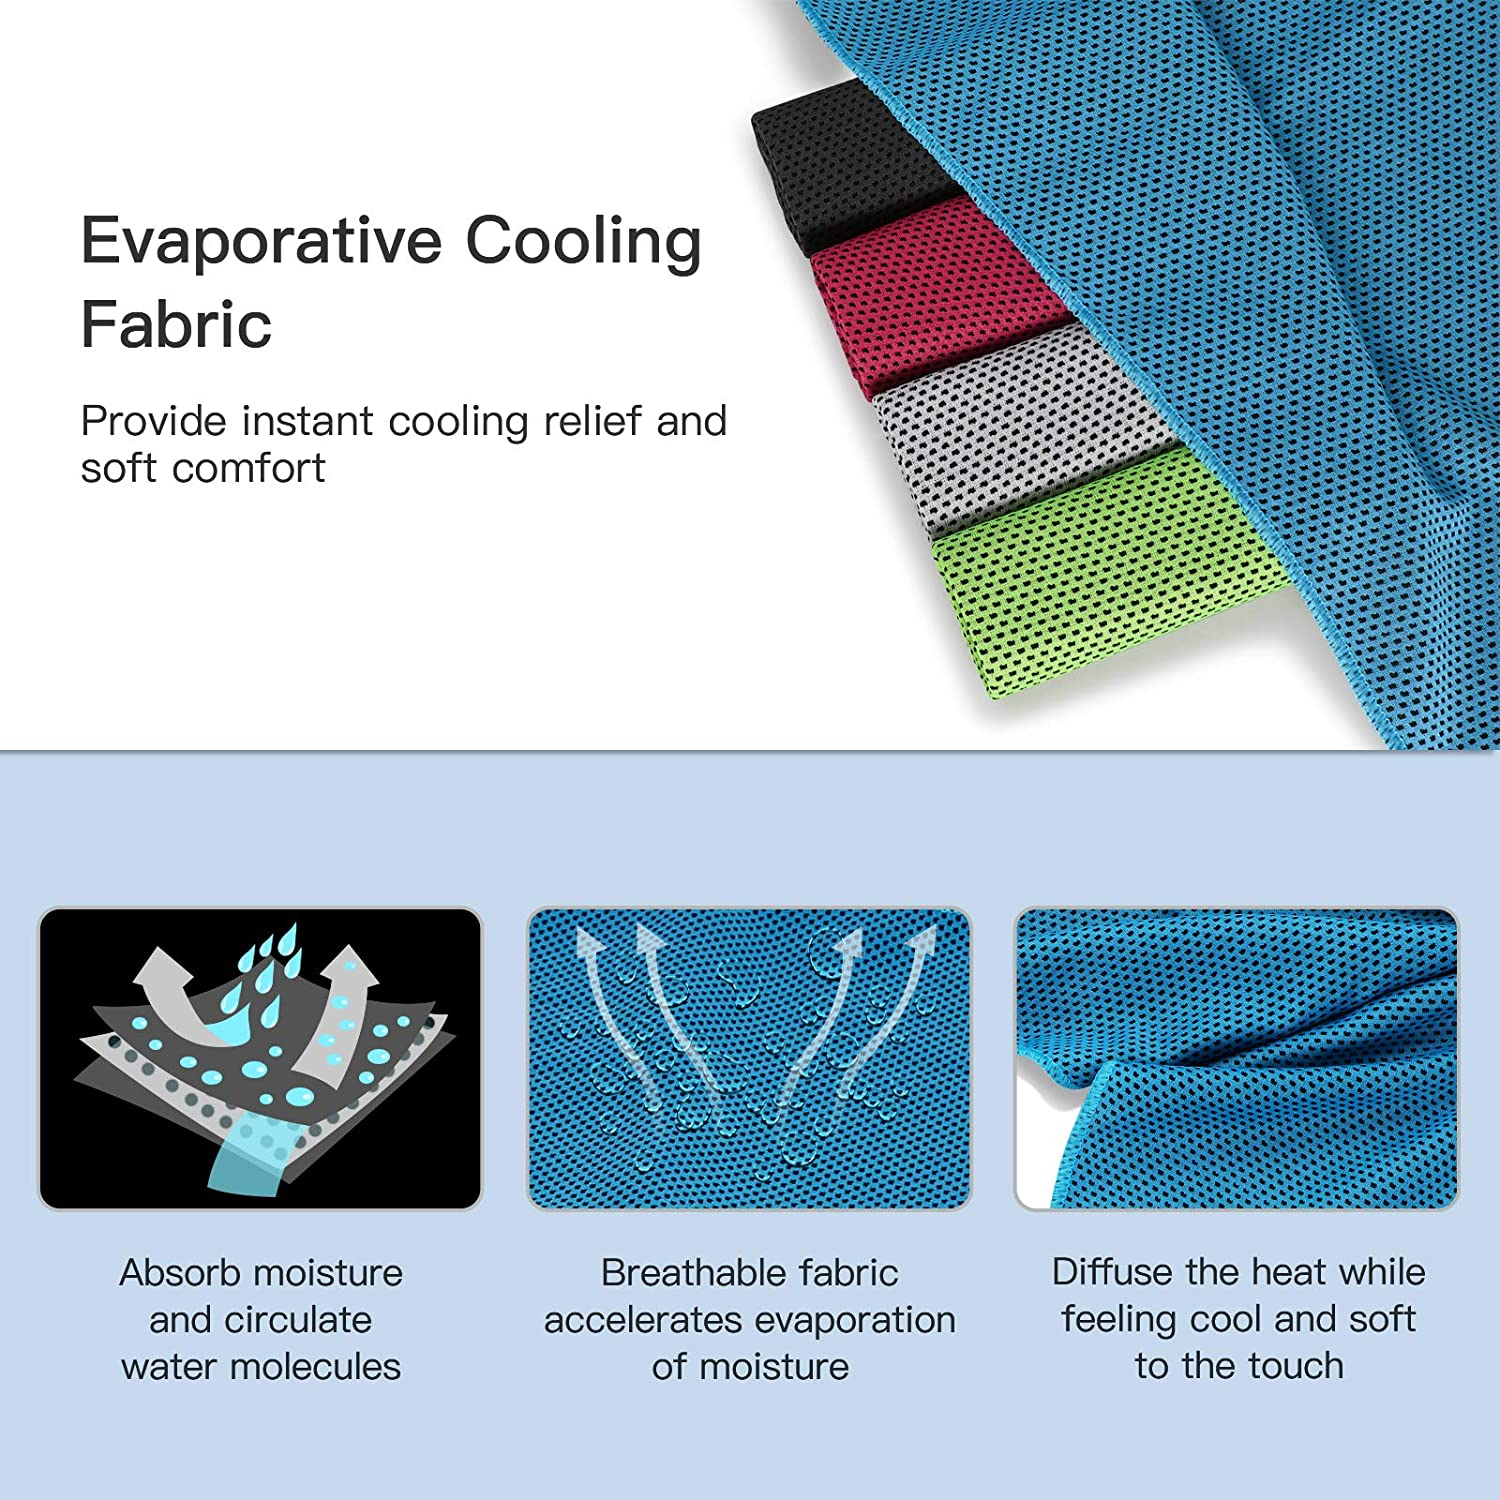 Sports Gym Outdoor 31X12 Workout Sihea Cooling Towel for Instant Relief Instant Cooling Towel Soft Breathable UPF 50+ Lightweight Absorbent Sport Towel for Yoga